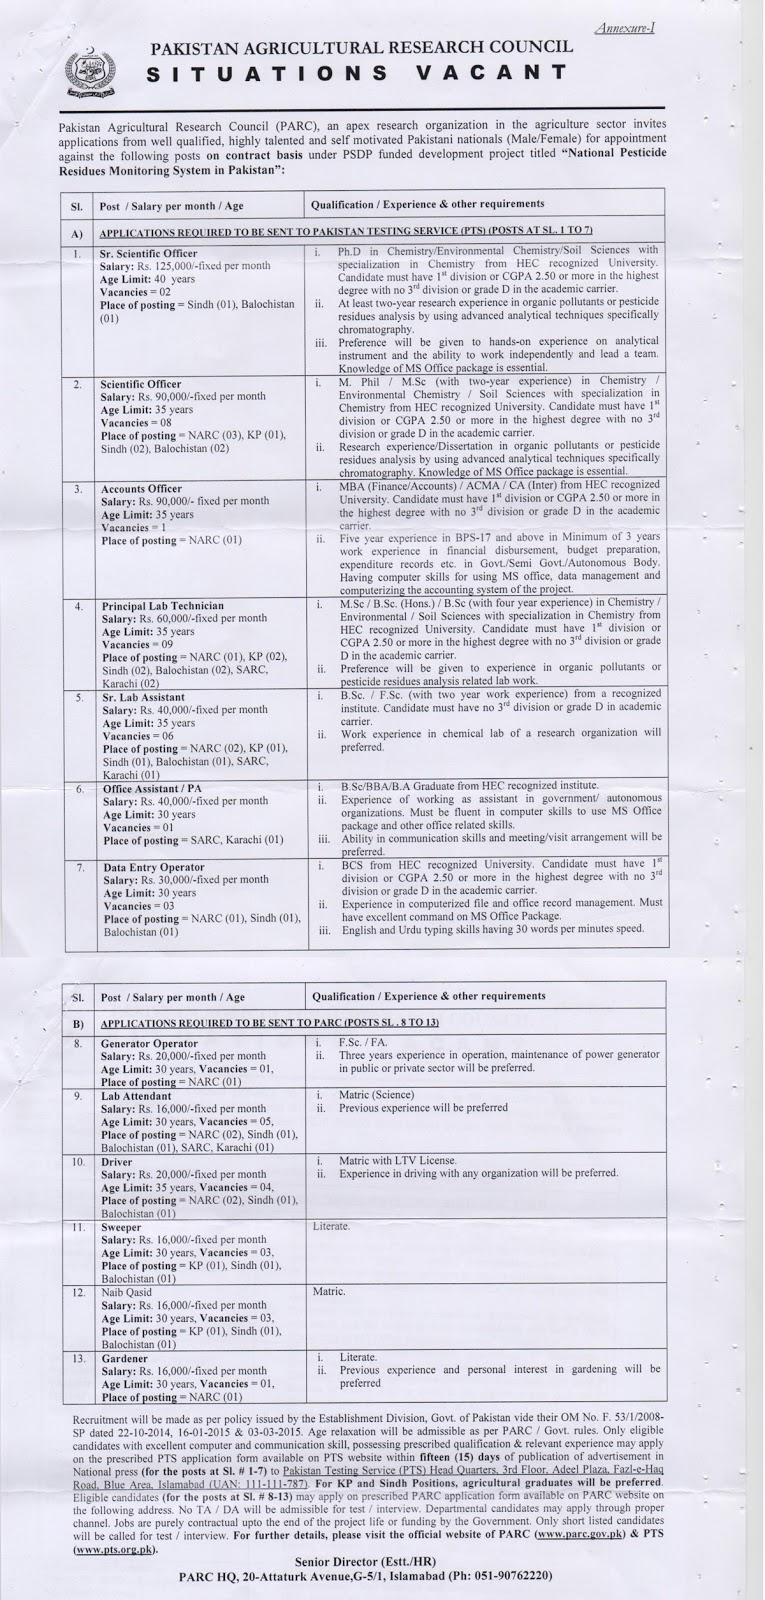 Pakistan Agricultural Research Council Situations Vacant